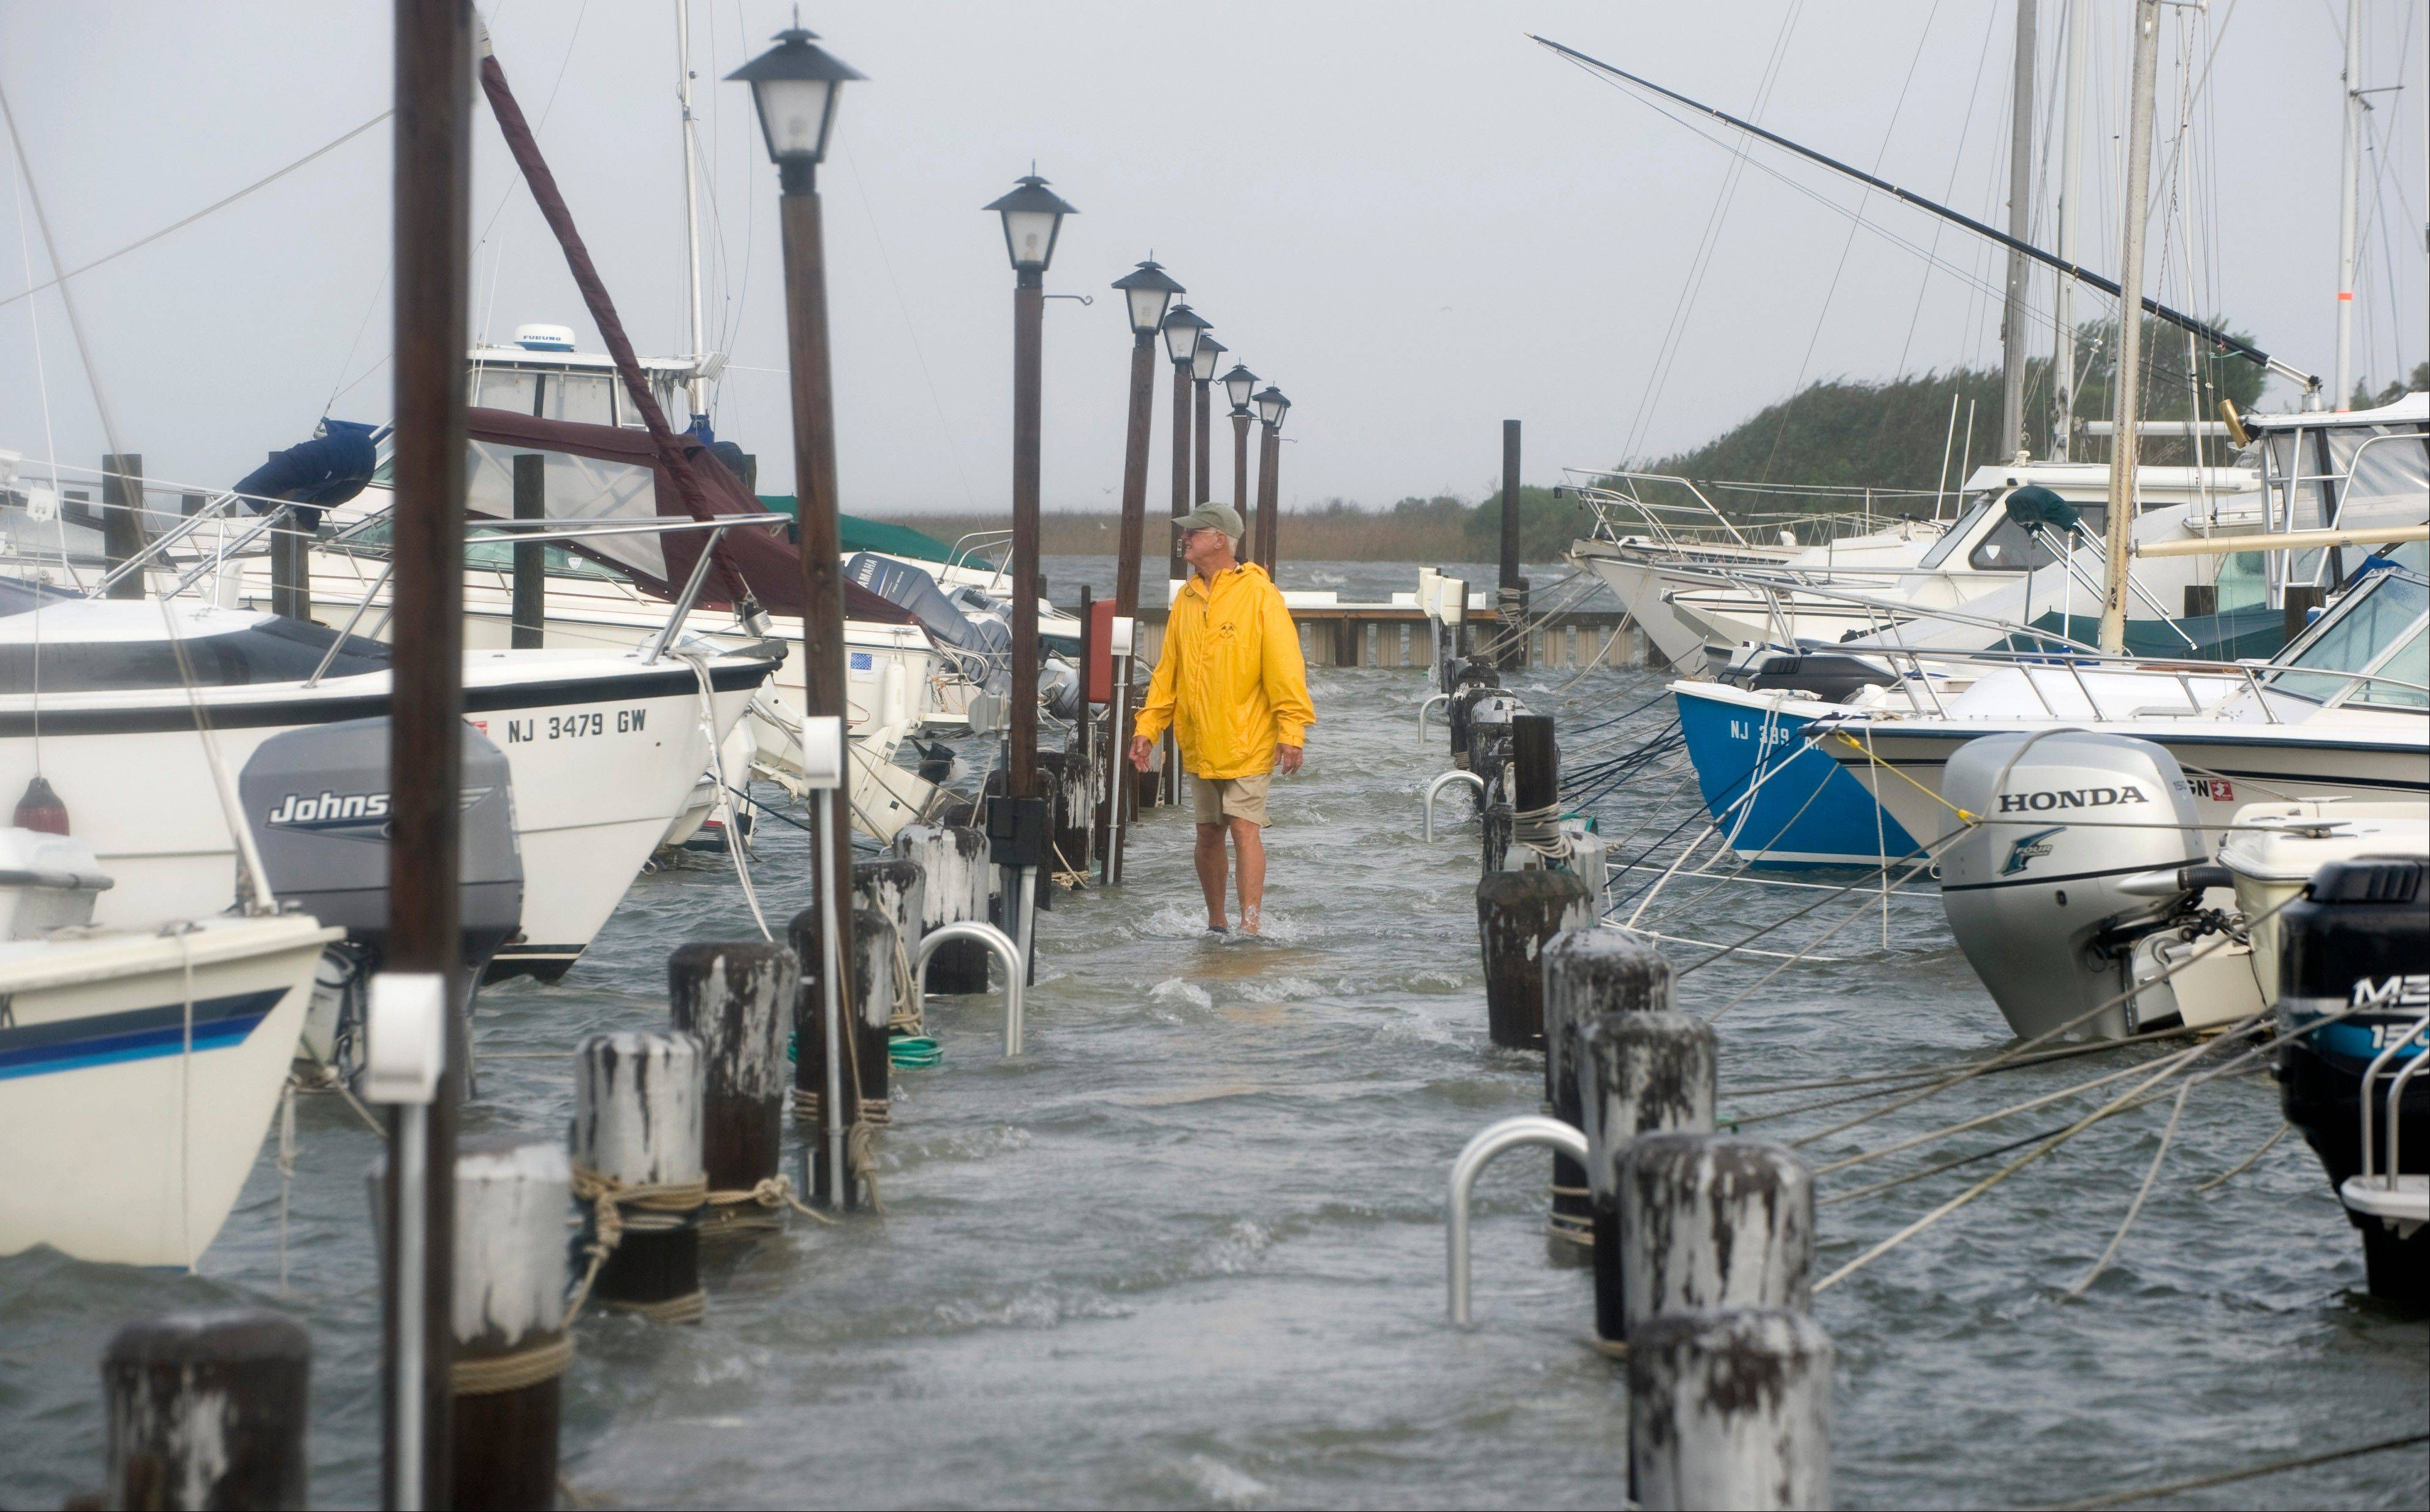 Robert Roy of Spray Beach, N.J., walks down one of the docks at the Spray Beach Yacht Club checking to make sure the boats are secure as the water in the bay rises from the tidal surge of Hurricane Irene on Long Beach Island, Sunday Aug. 28, 2011 in Spray Beach, N.J.